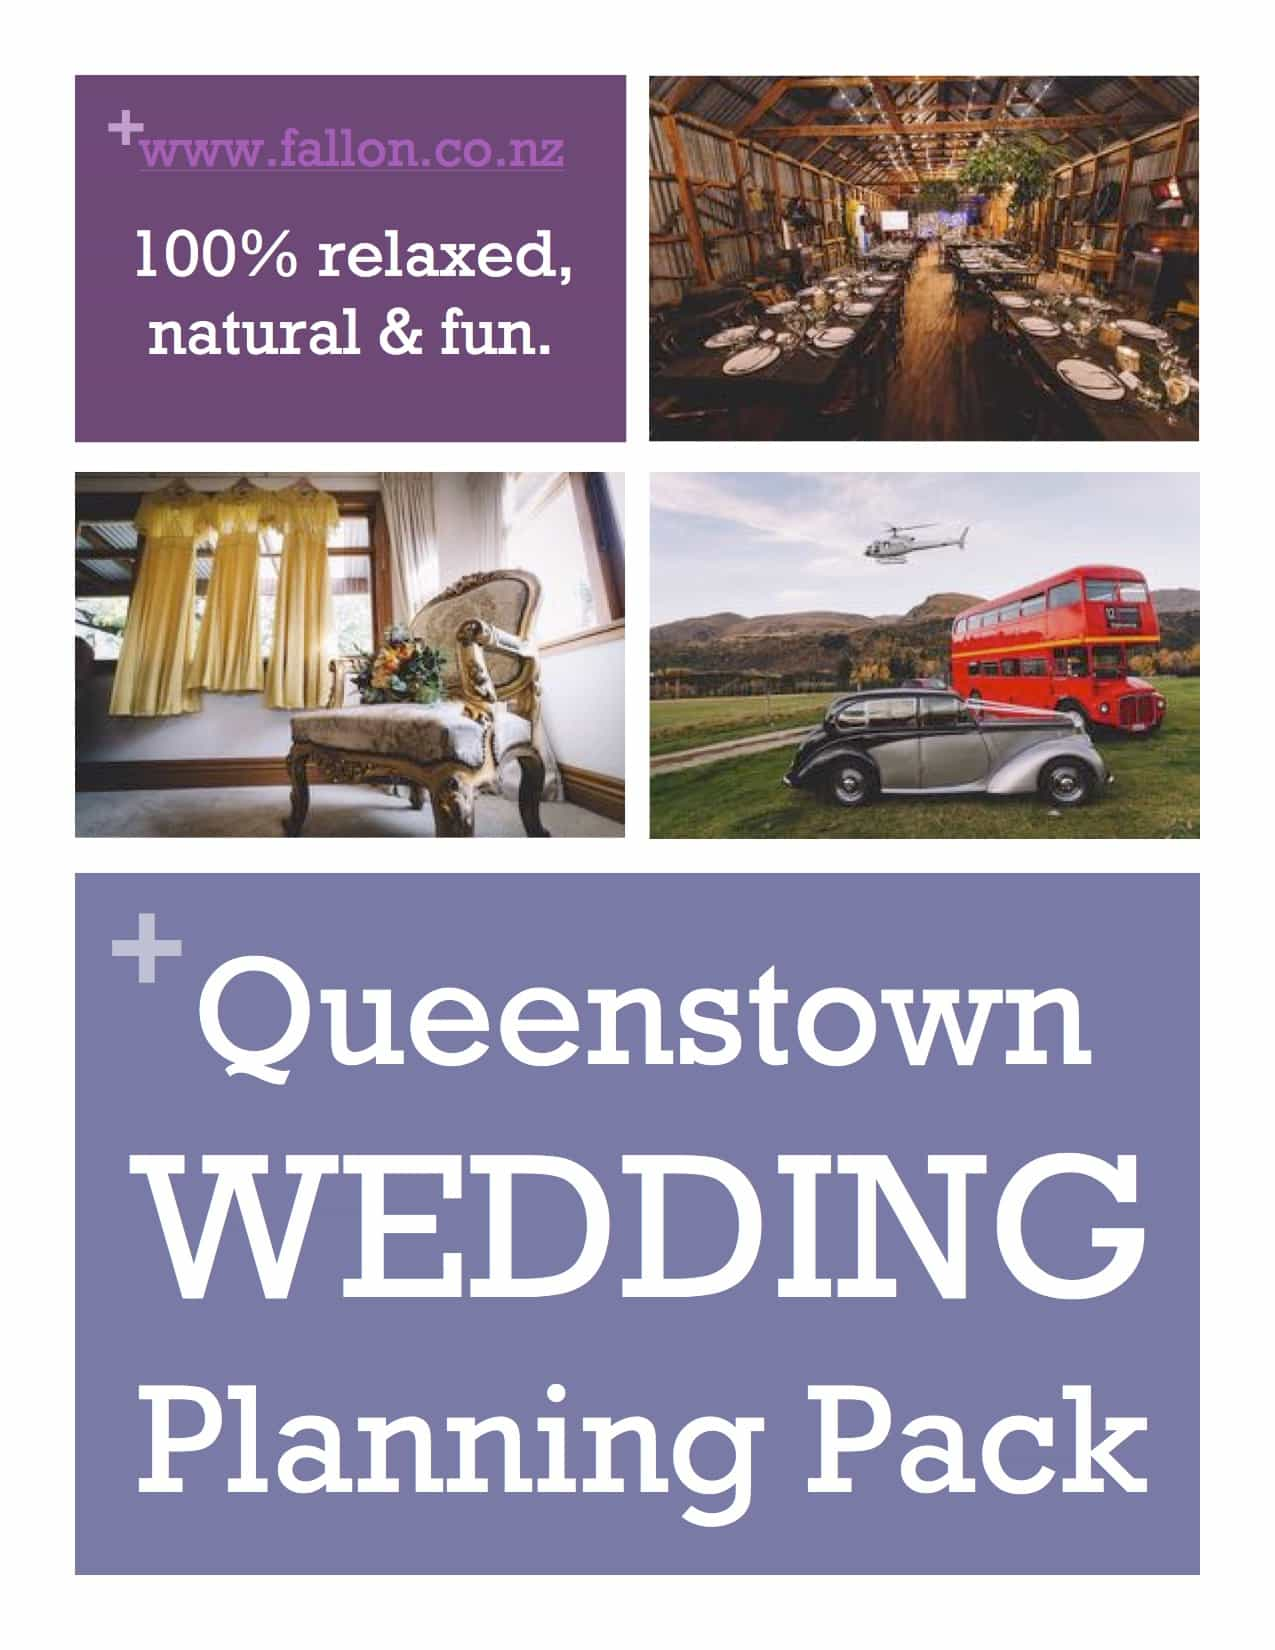 Queenstown-wedding-planning-pack-by-www.fallon.co.nz-low-res-page-1